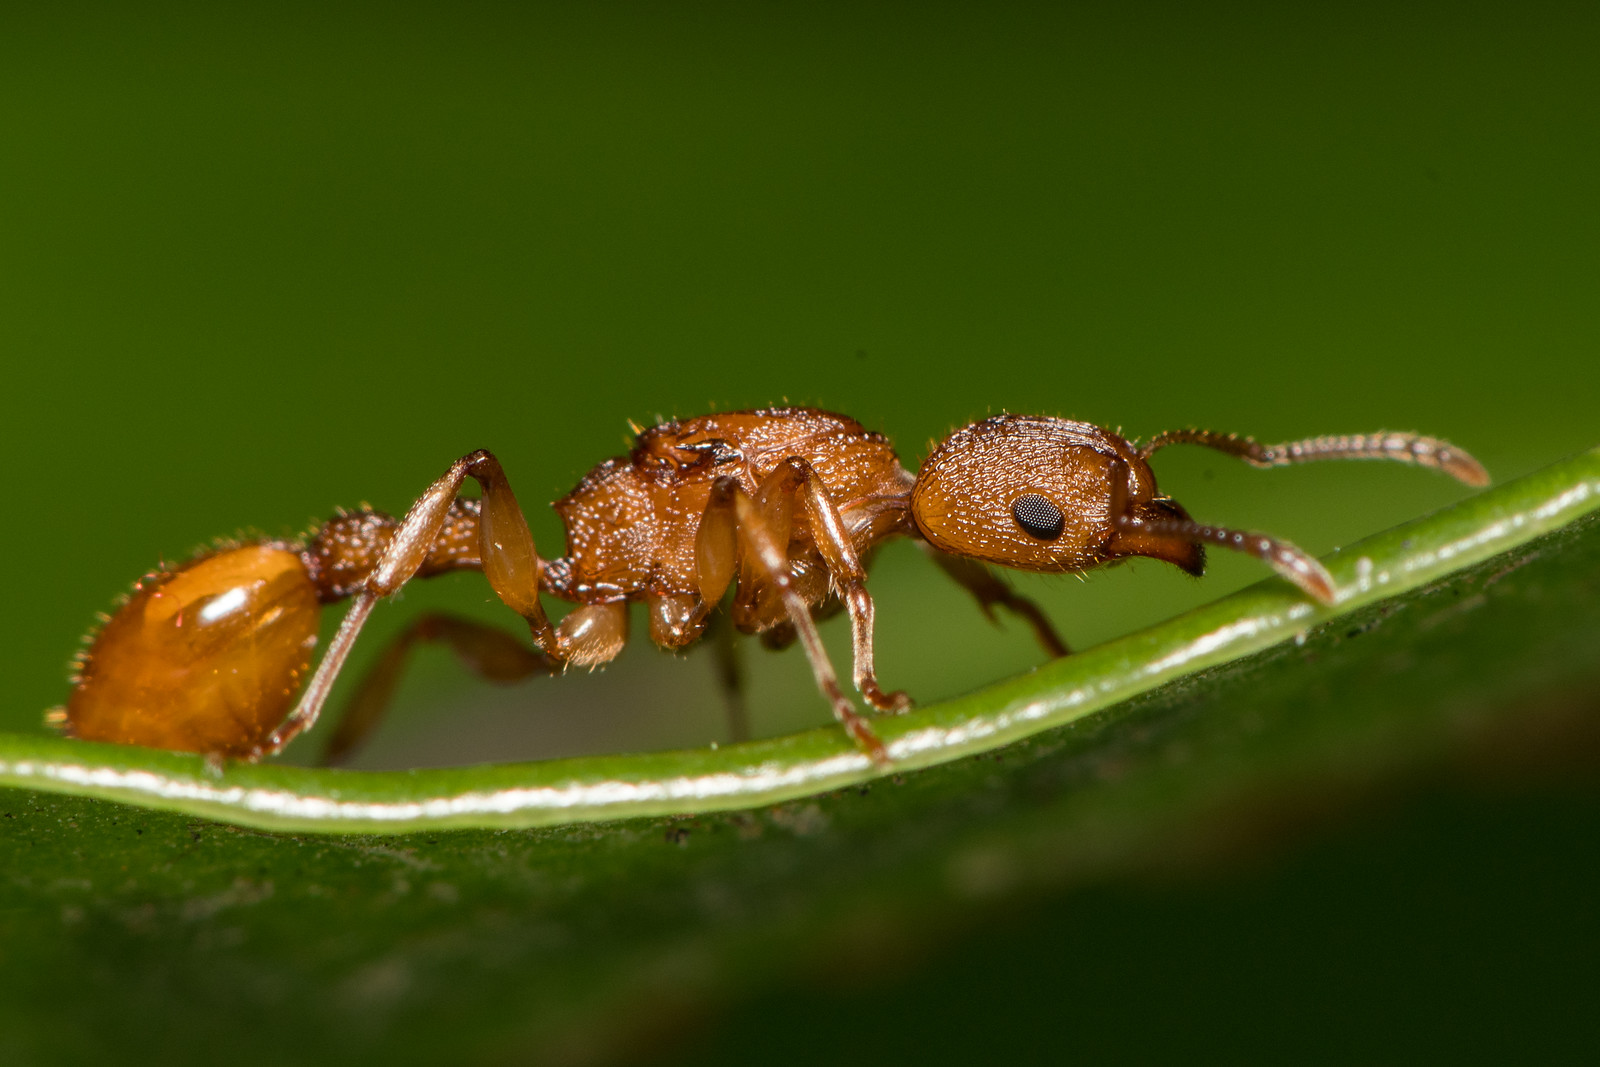 A golden coloured insect (ant) on a green leaf